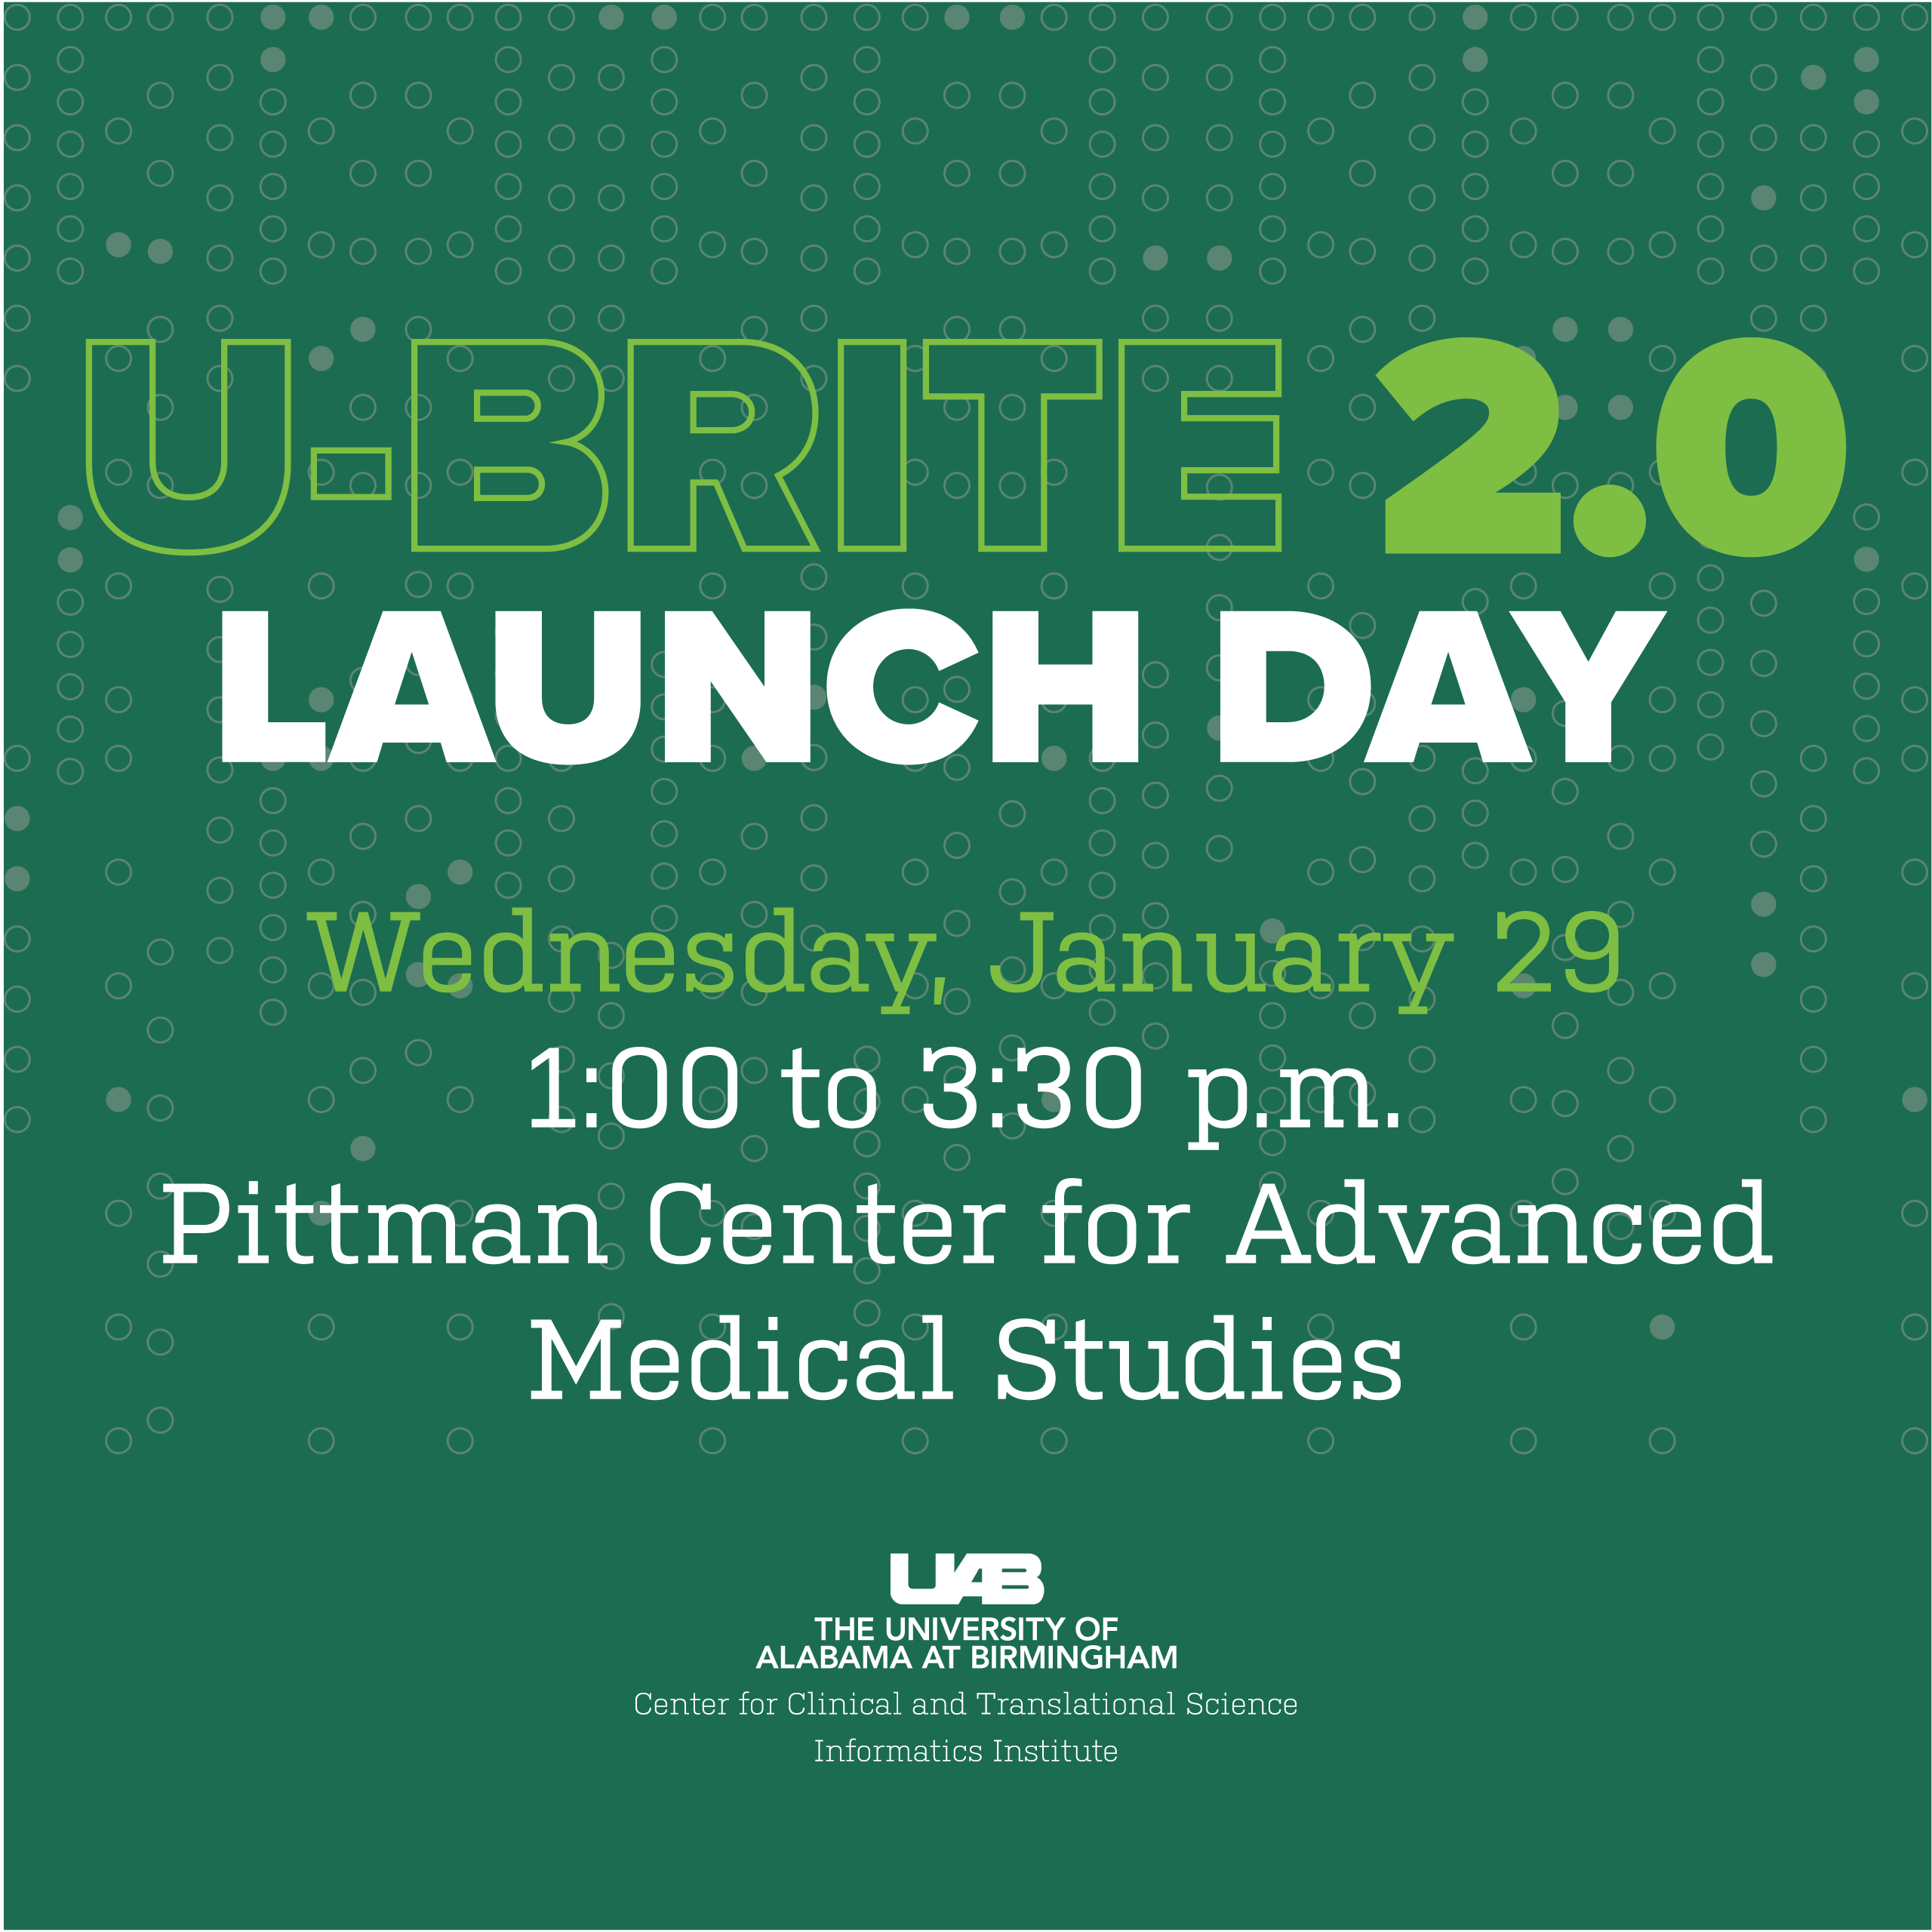 Calling All Research Teams: U-BRITE 2.0 Launch Day is January 29th!